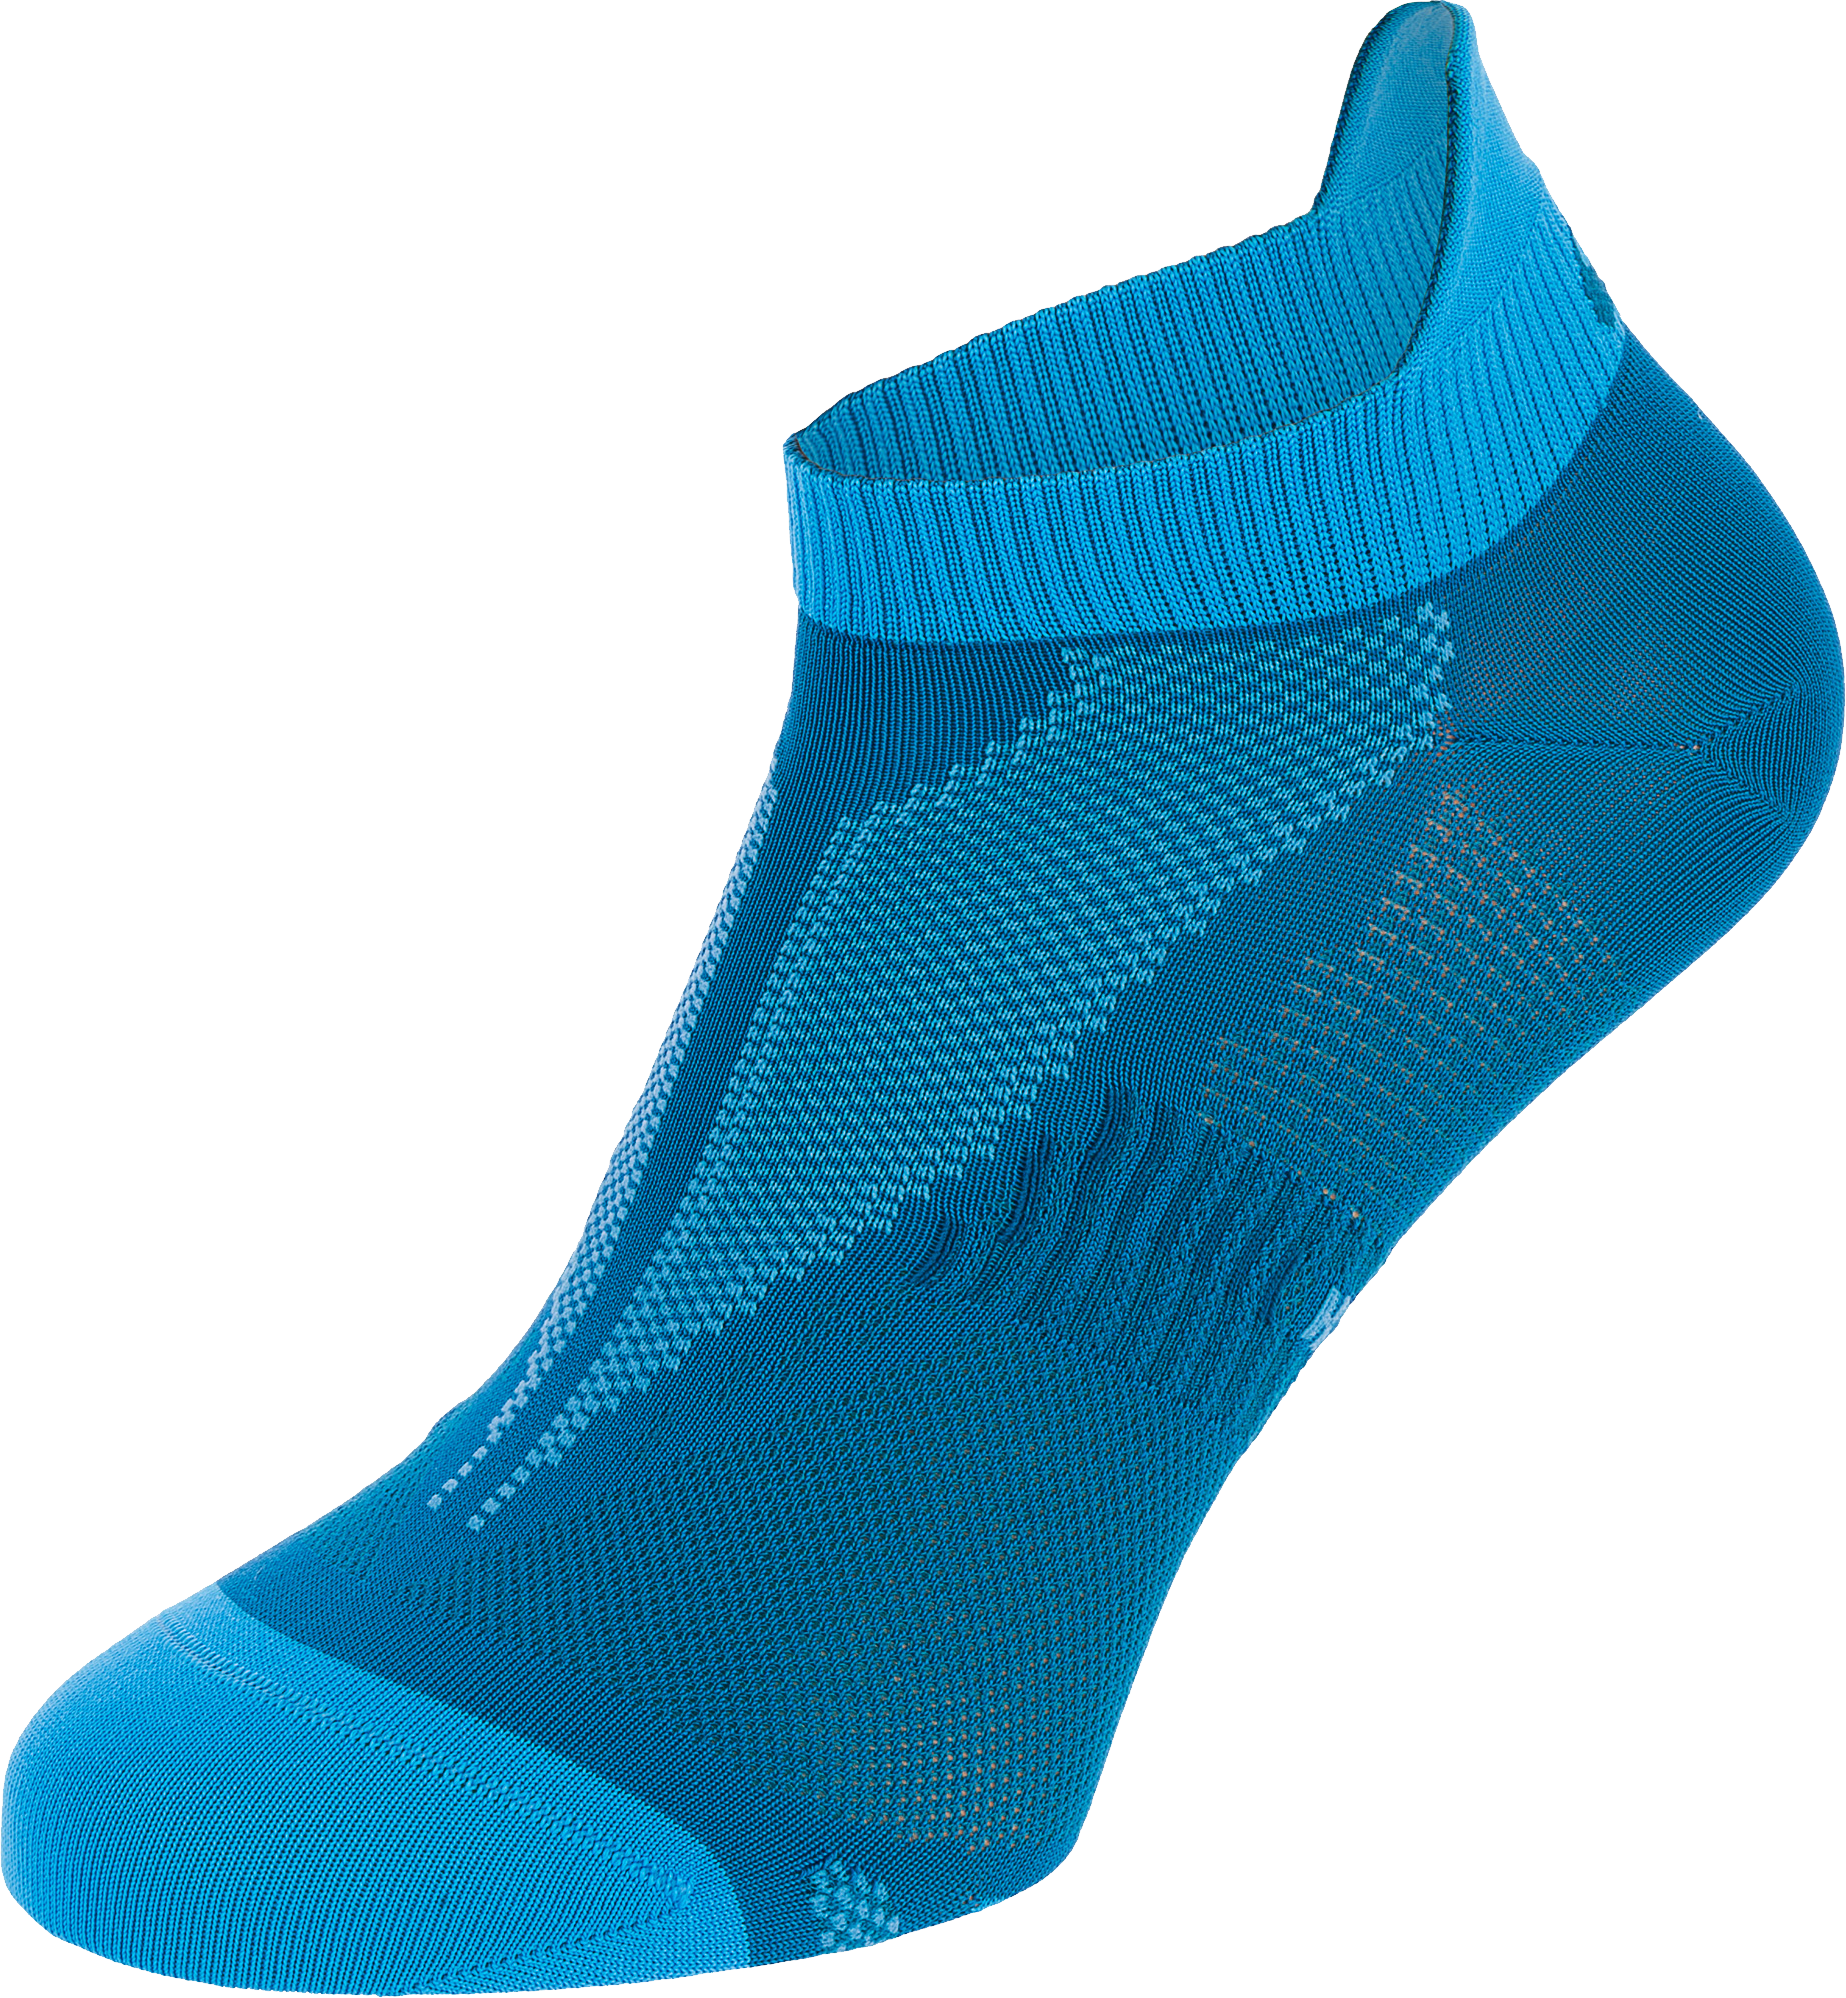 Sock clipart knitted sock. Free blue socks cliparts